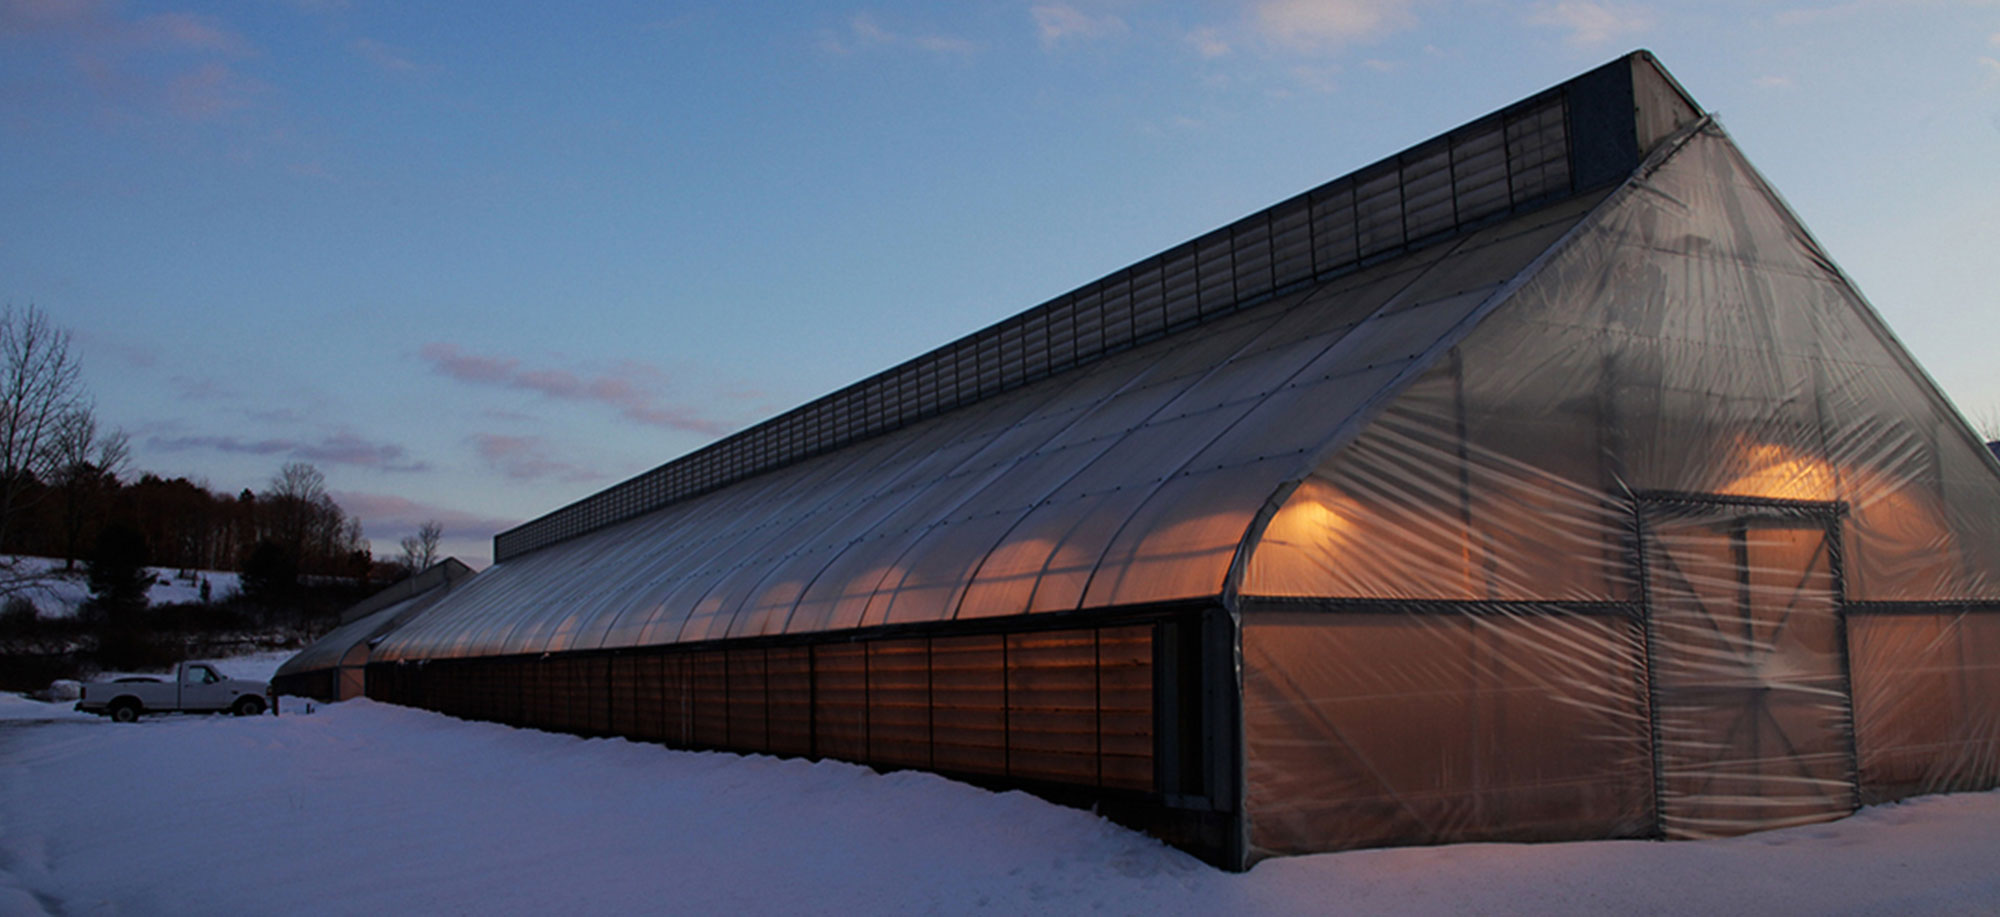 Greenhouse in the Winter